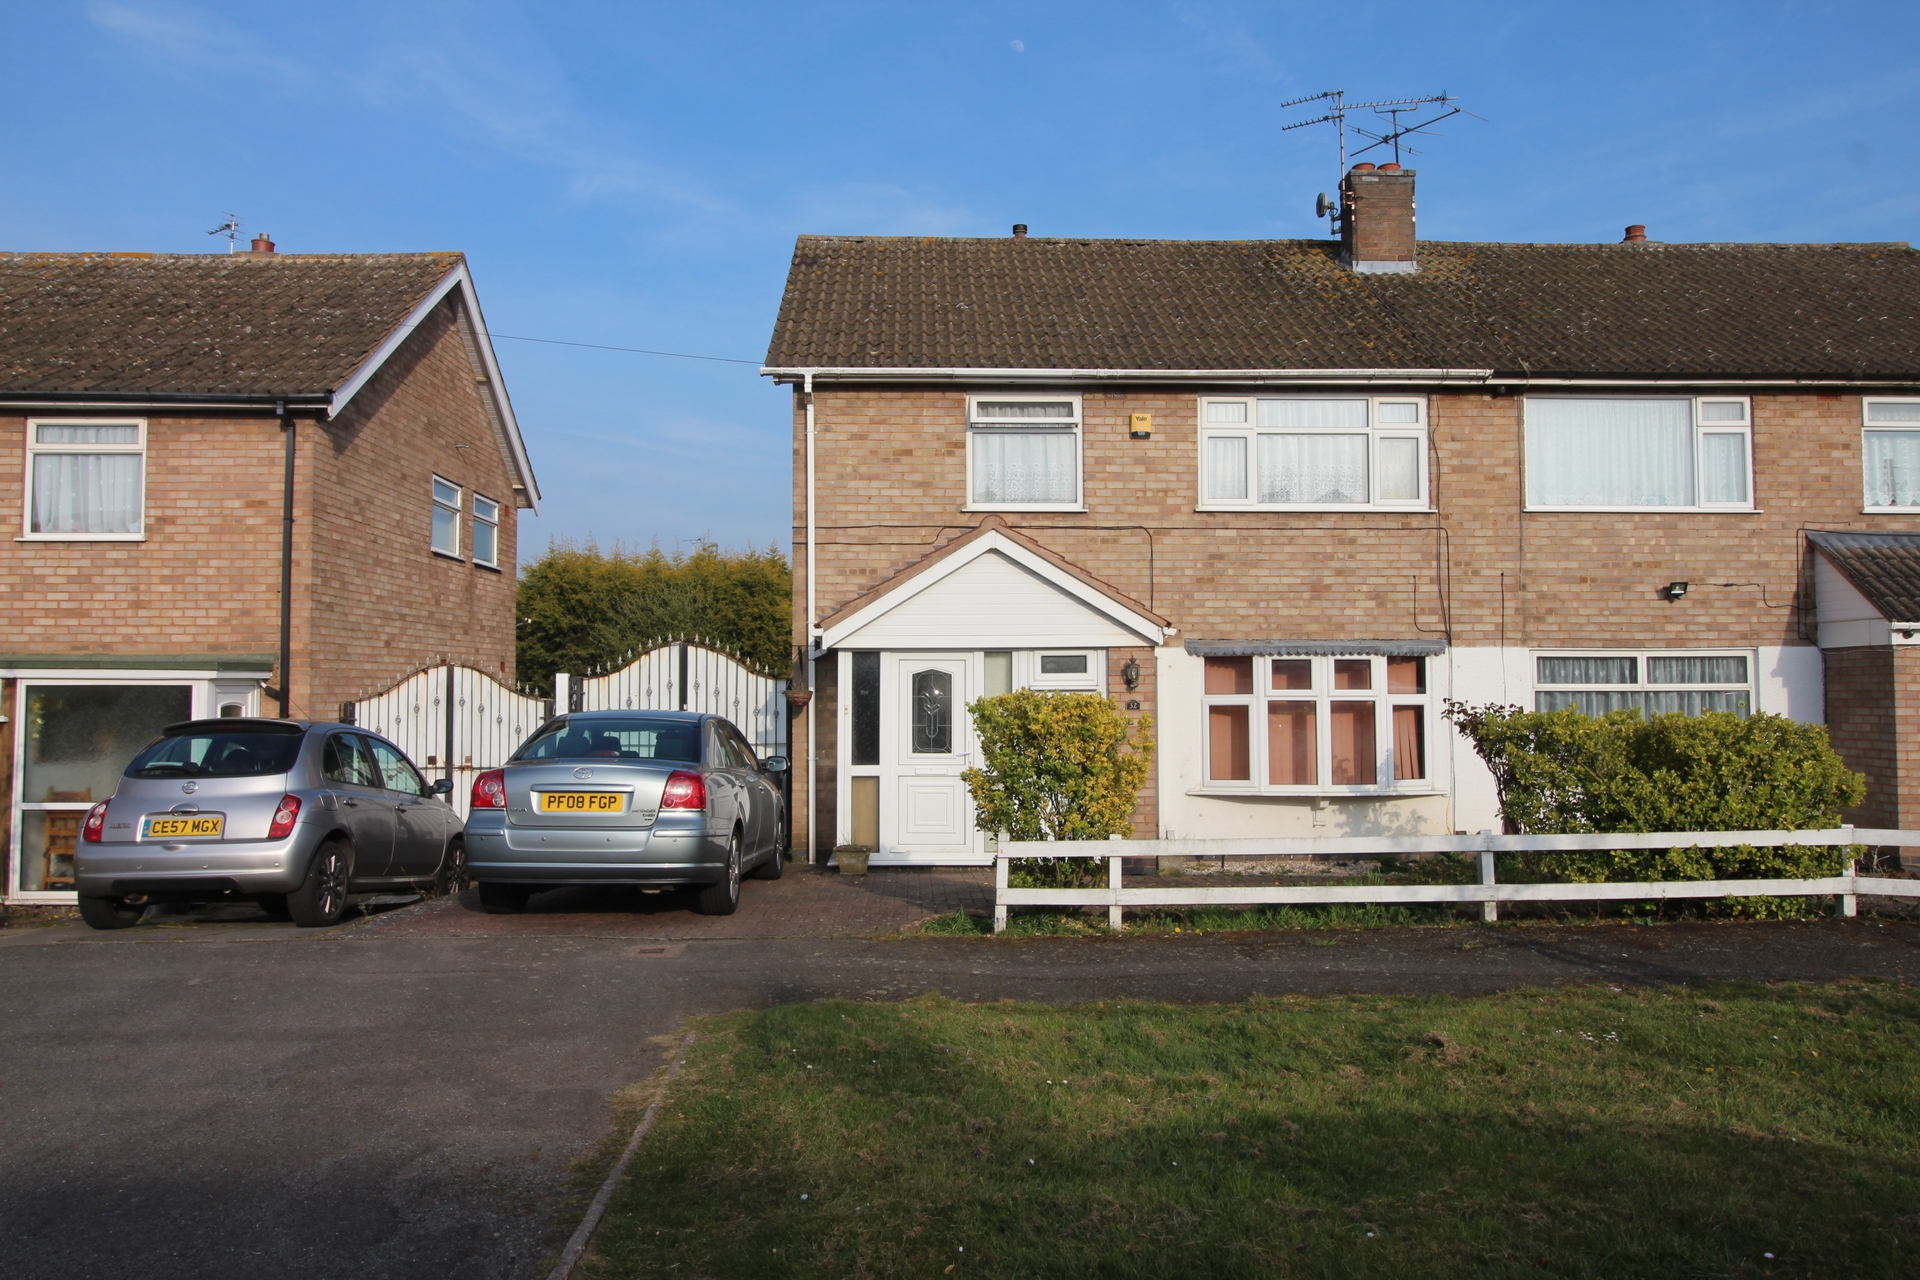 Photo 1, Kilverstone Avenue, Leicester, LE5